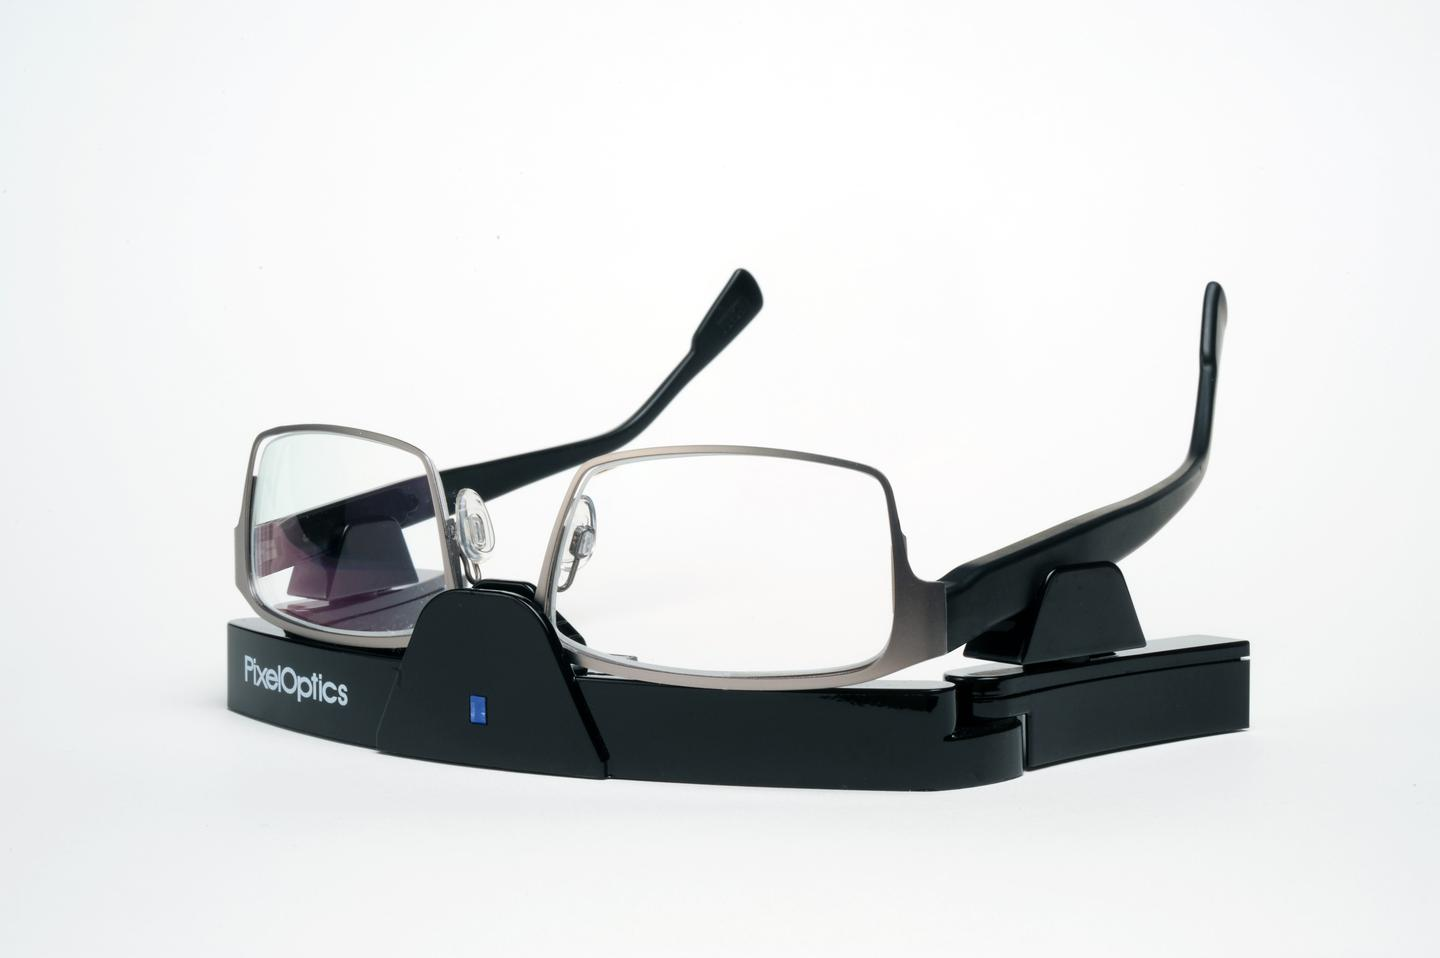 PixelOptics' emPower! electronic focusing glasses, in their charging stand